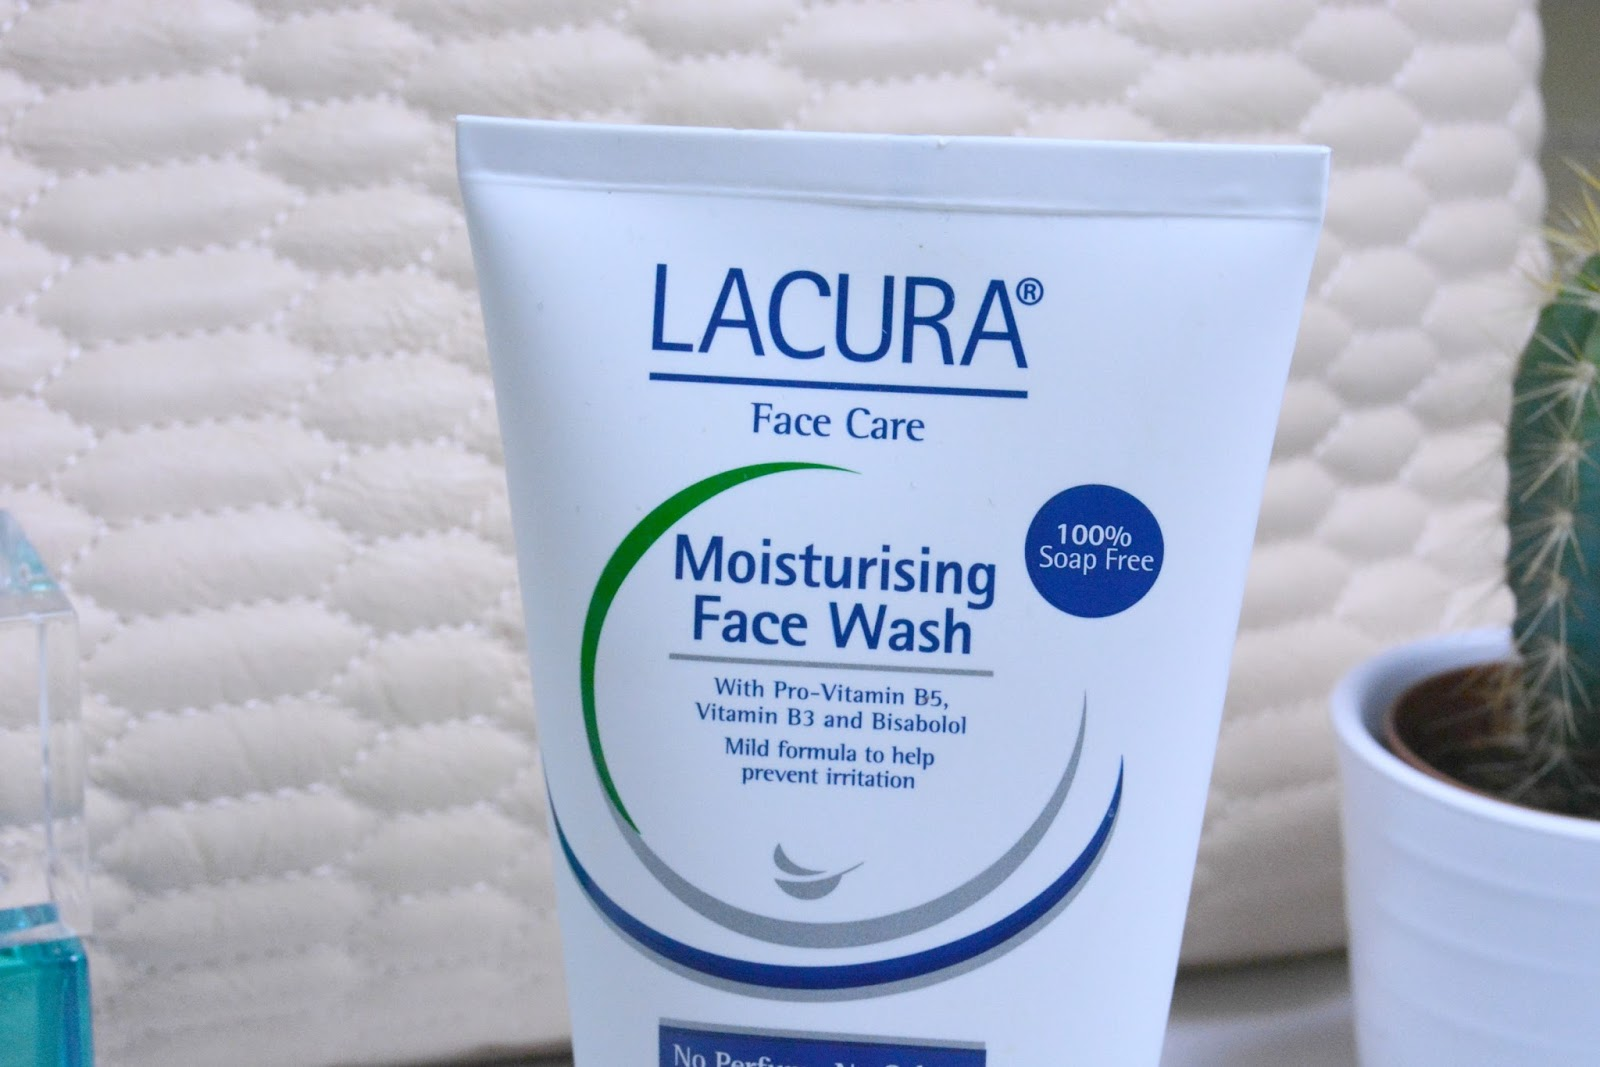 face wash, lacura, skin care, skincare, review, beauty, cleanser, make up remover, aldi, shopping, bargain